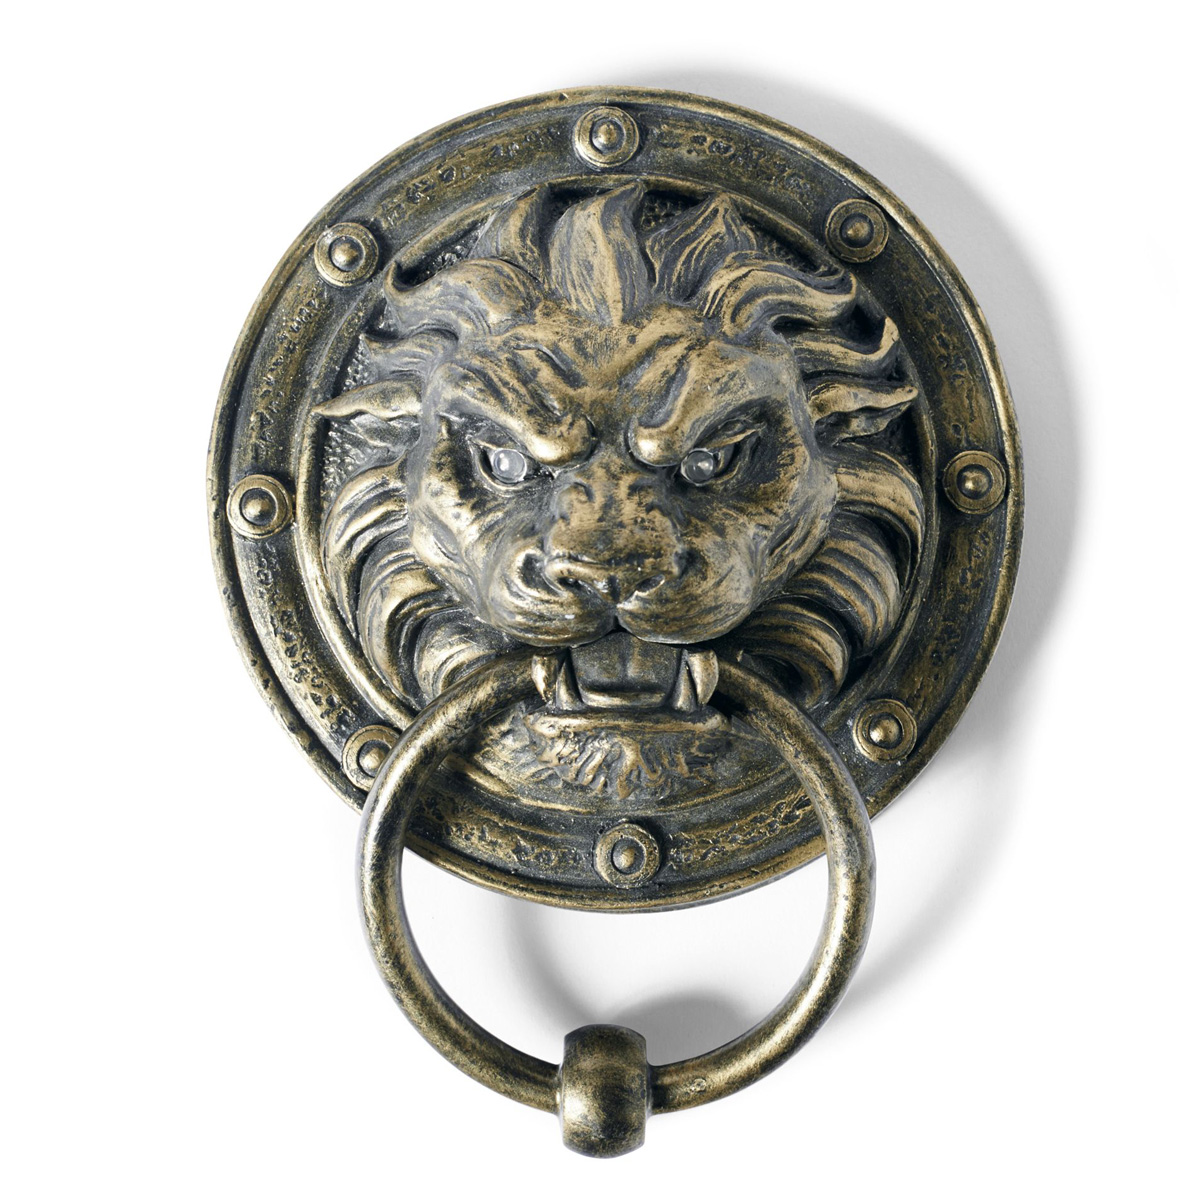 Creepy Lion Door Knocker WIth Glowing Eyes